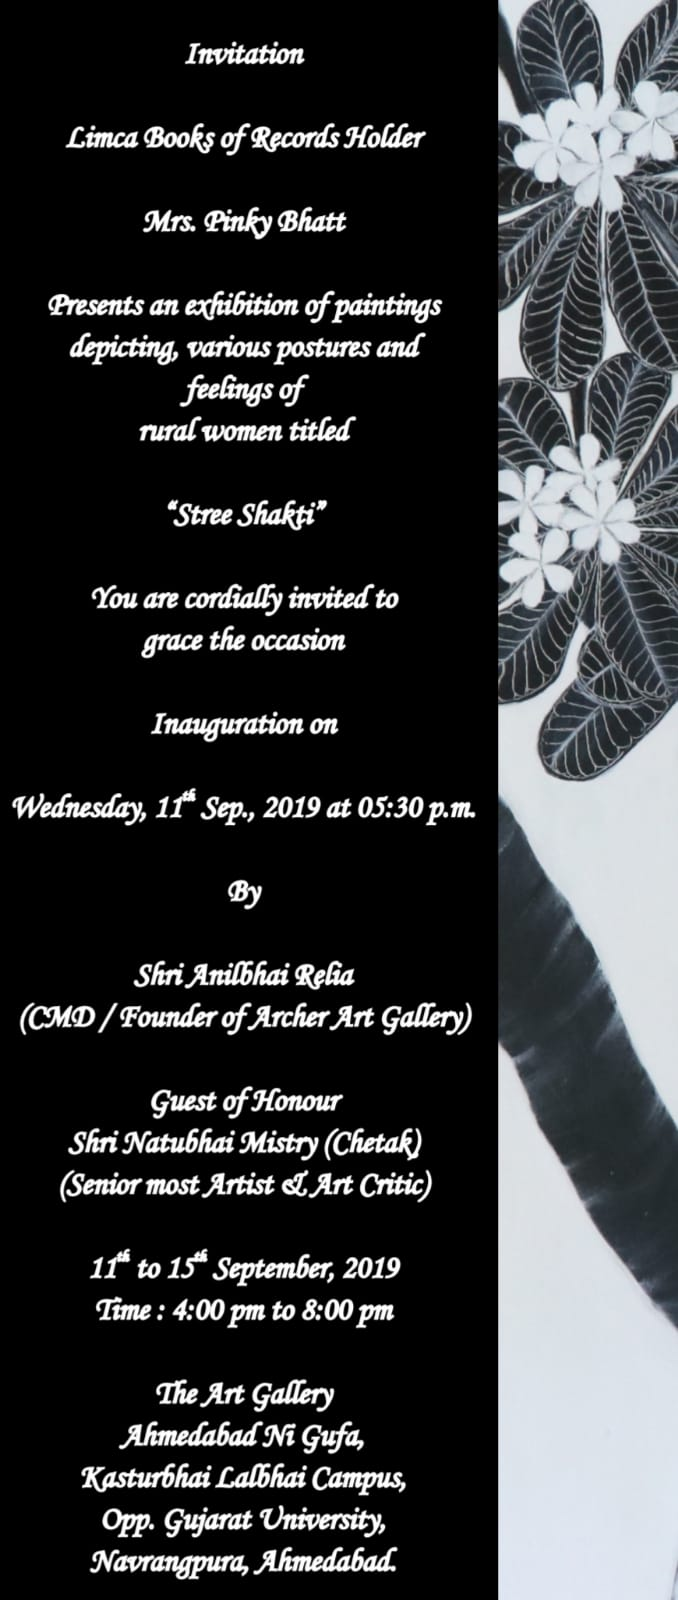 Stree Shakti - A Painting Exhibition by Pinky Bhatt